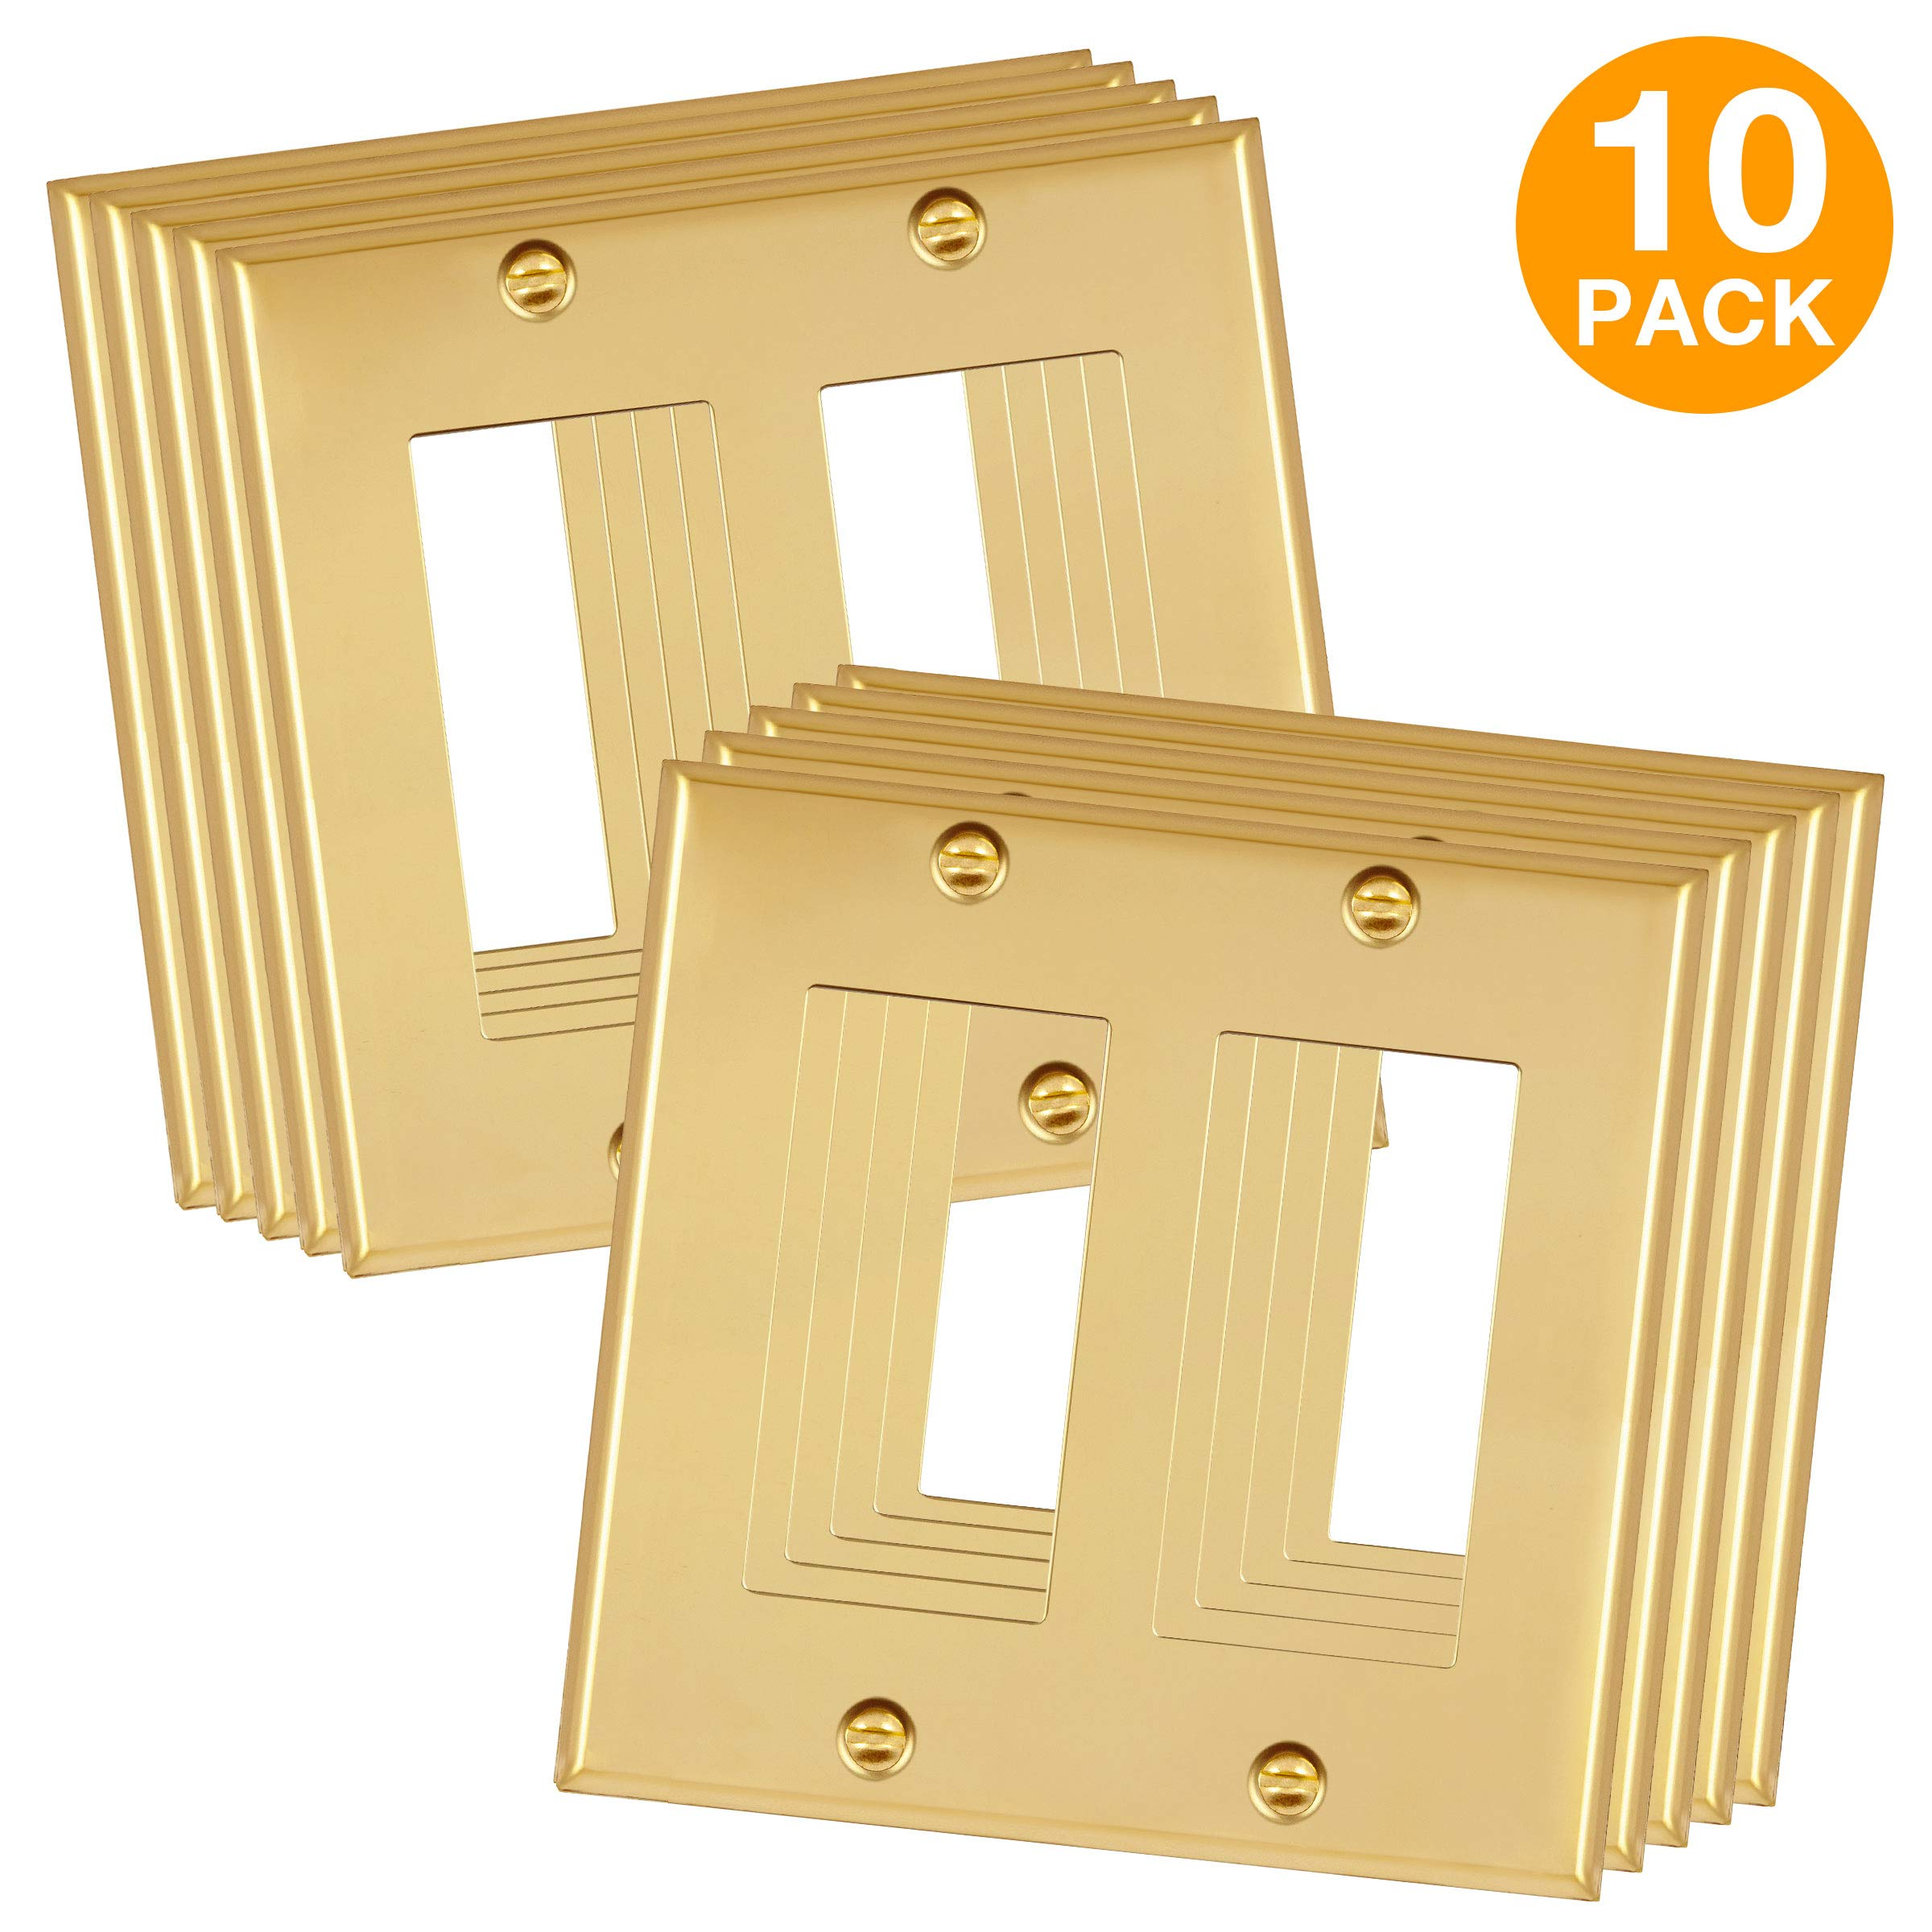 ENERLITES Decorator Switch/Outlet Metal Wall Plate, Corrosive Resistant, Size 2-Gang 4.50'' x 4.57'', 7732-PB-10PCS, 302 Polished Brass (10 Pack)